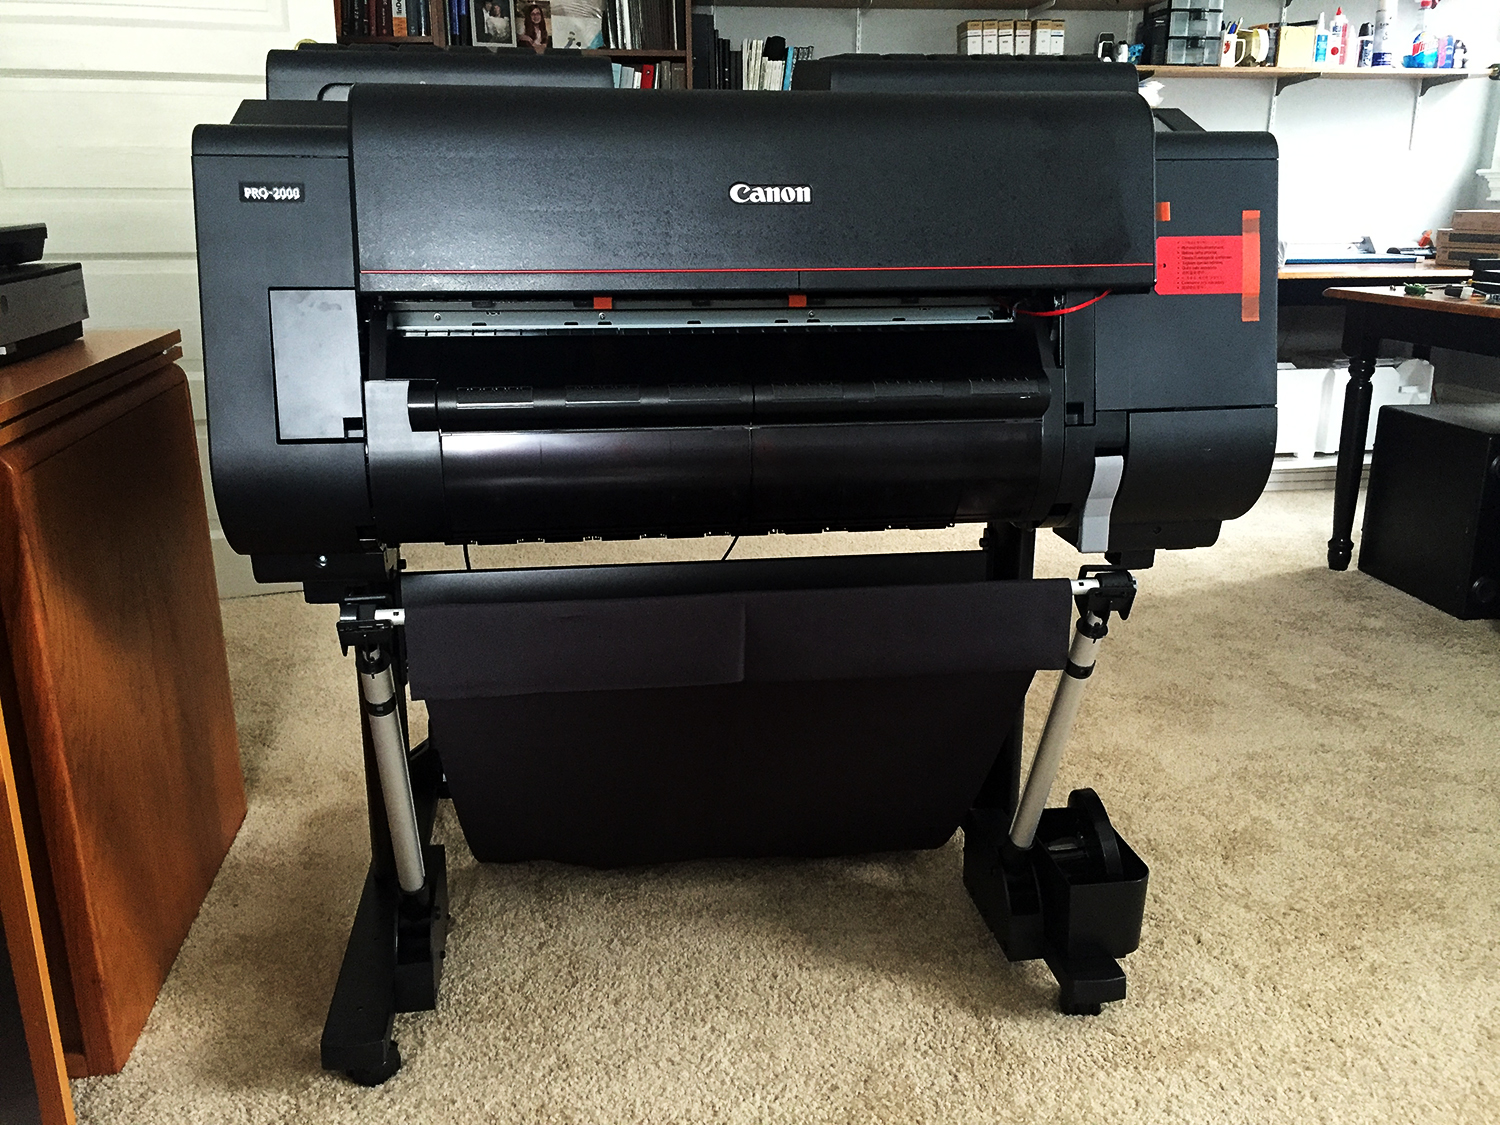 The Canon ImagePrograf 2000 makes it to its third floor 'resting place'